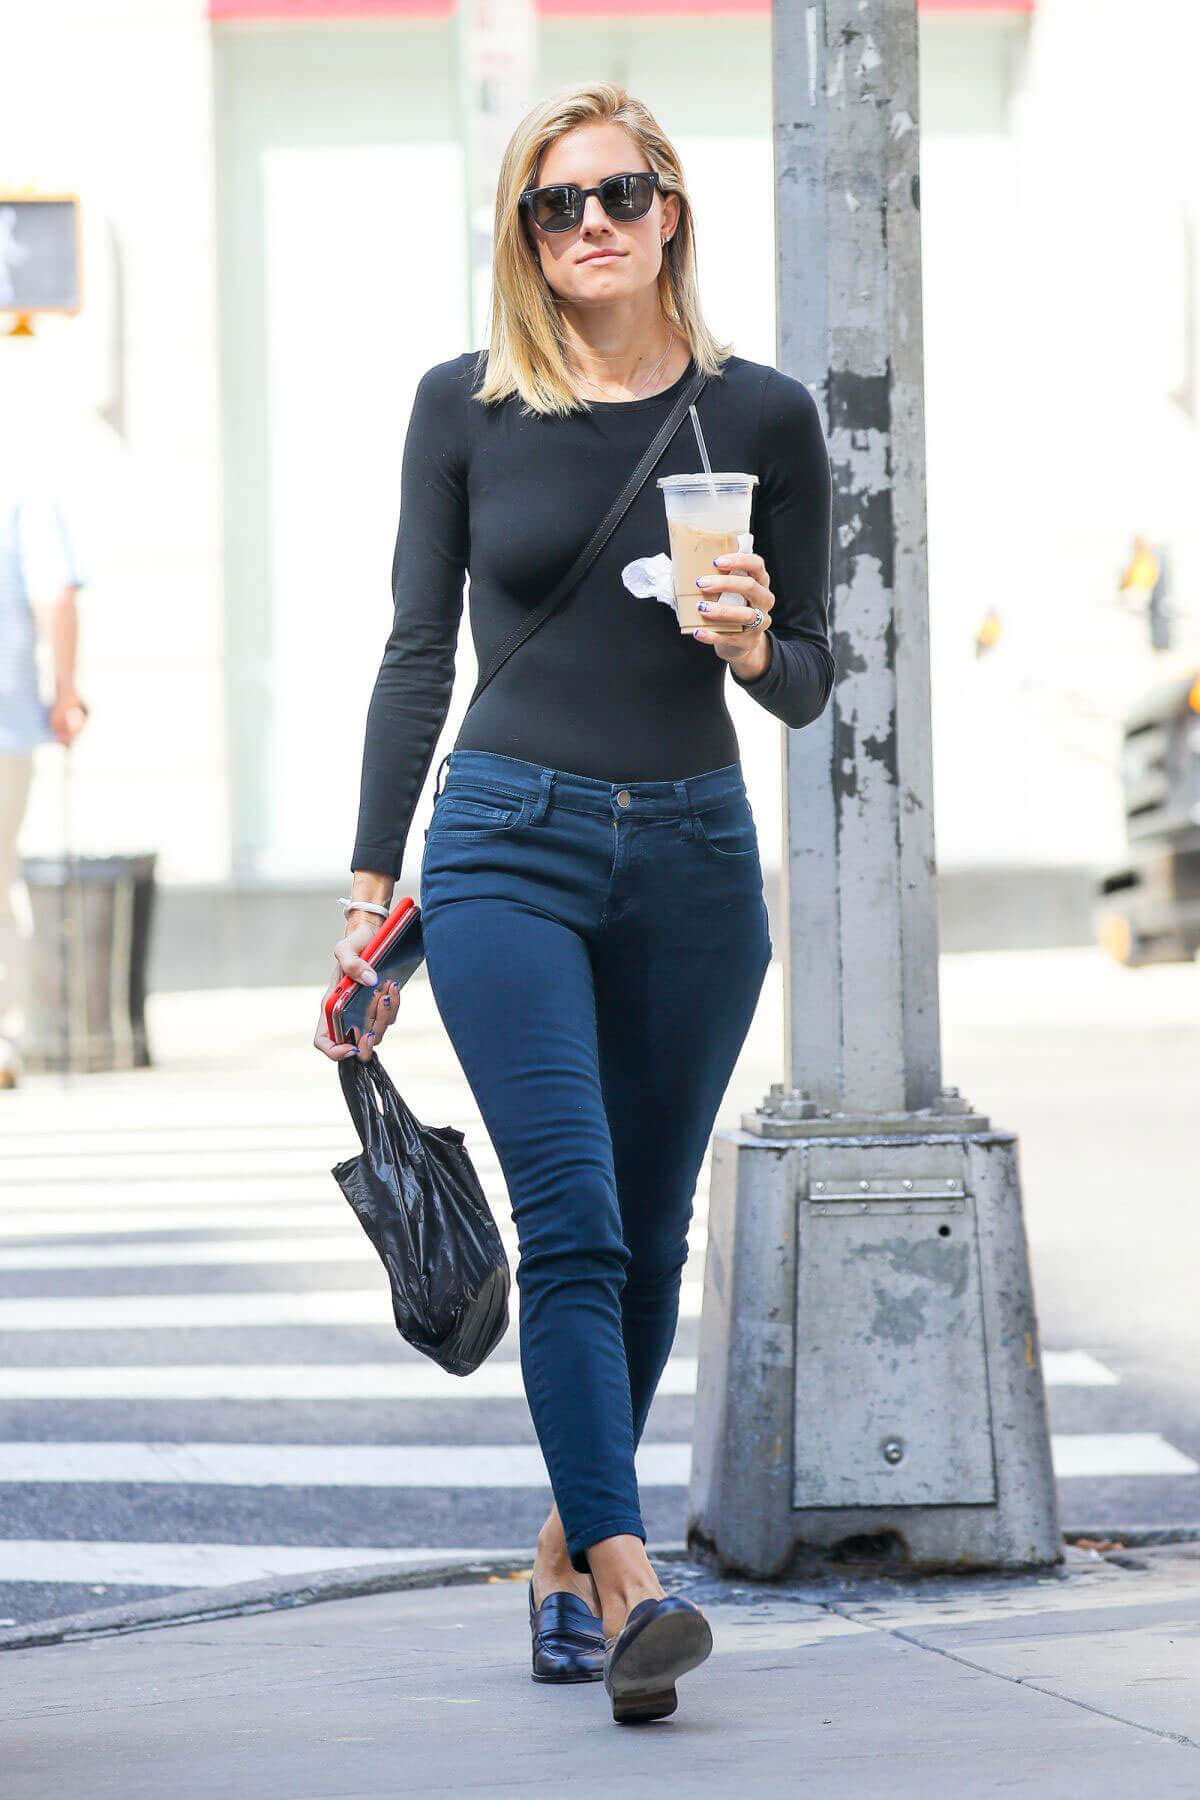 Allison Williams wears Tight Top & Jeans out for Coffee in New York